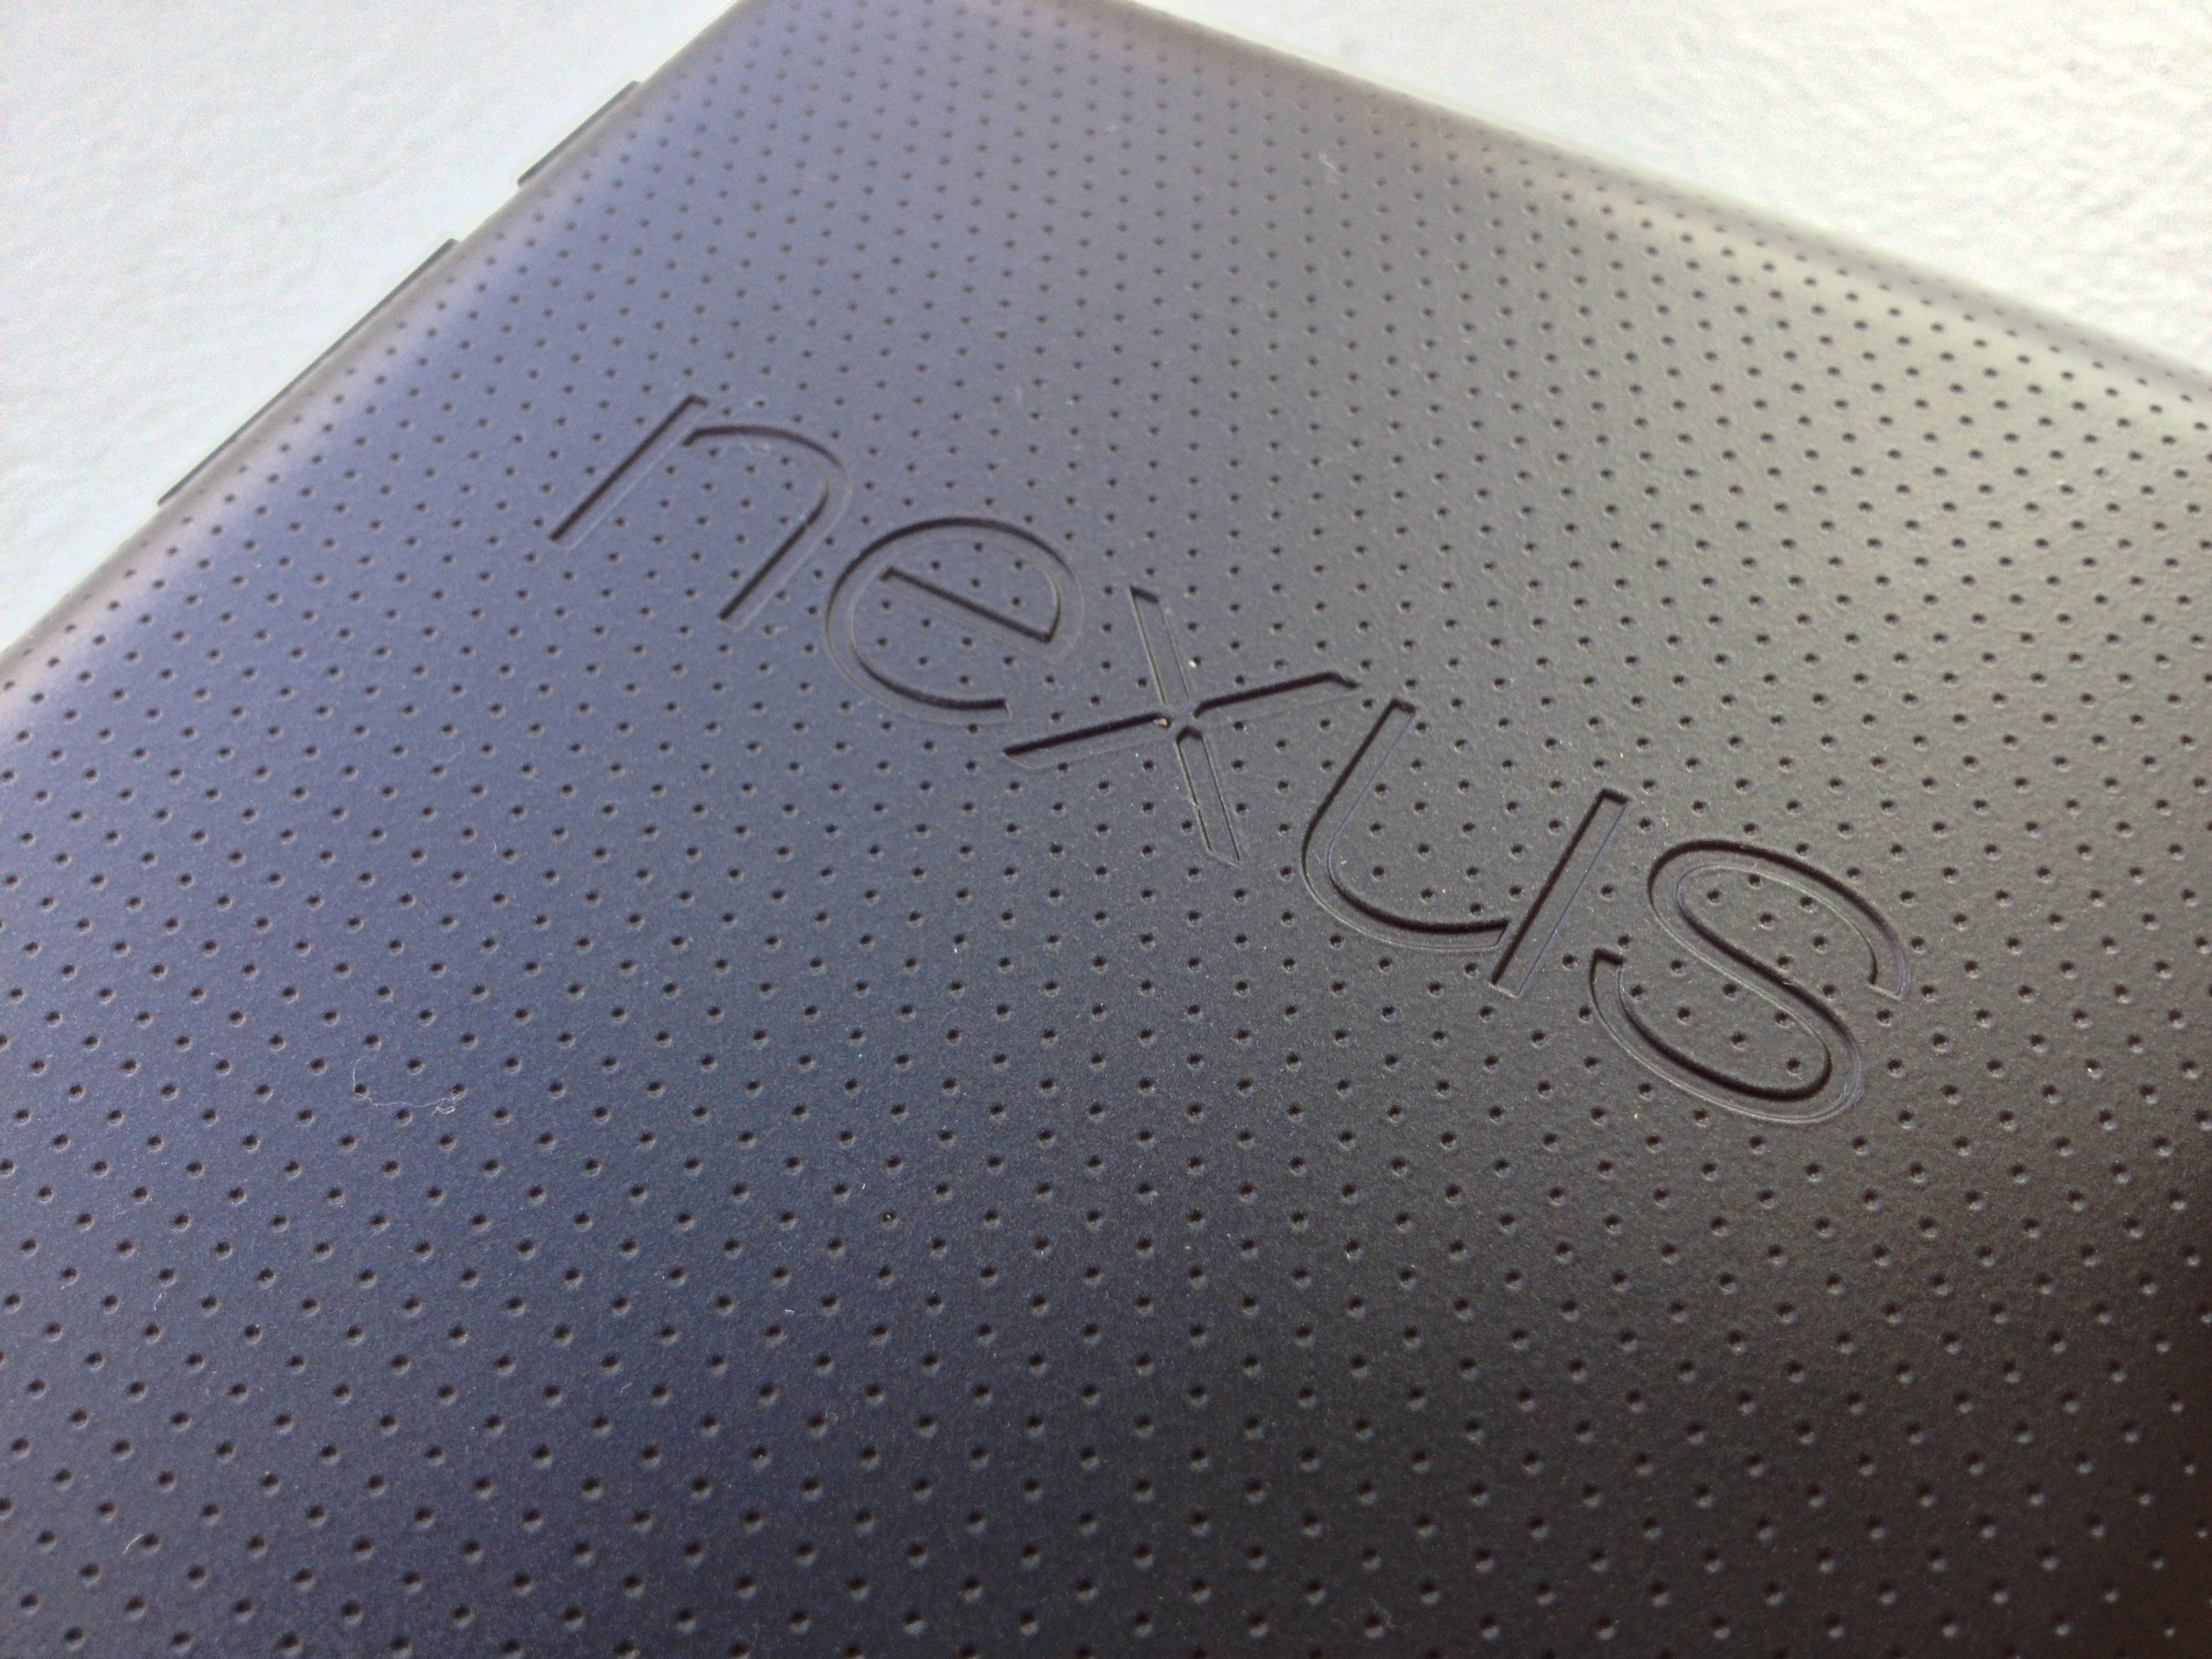 Asus confirms Nexus 7 tablet sales are approaching 1m units per month